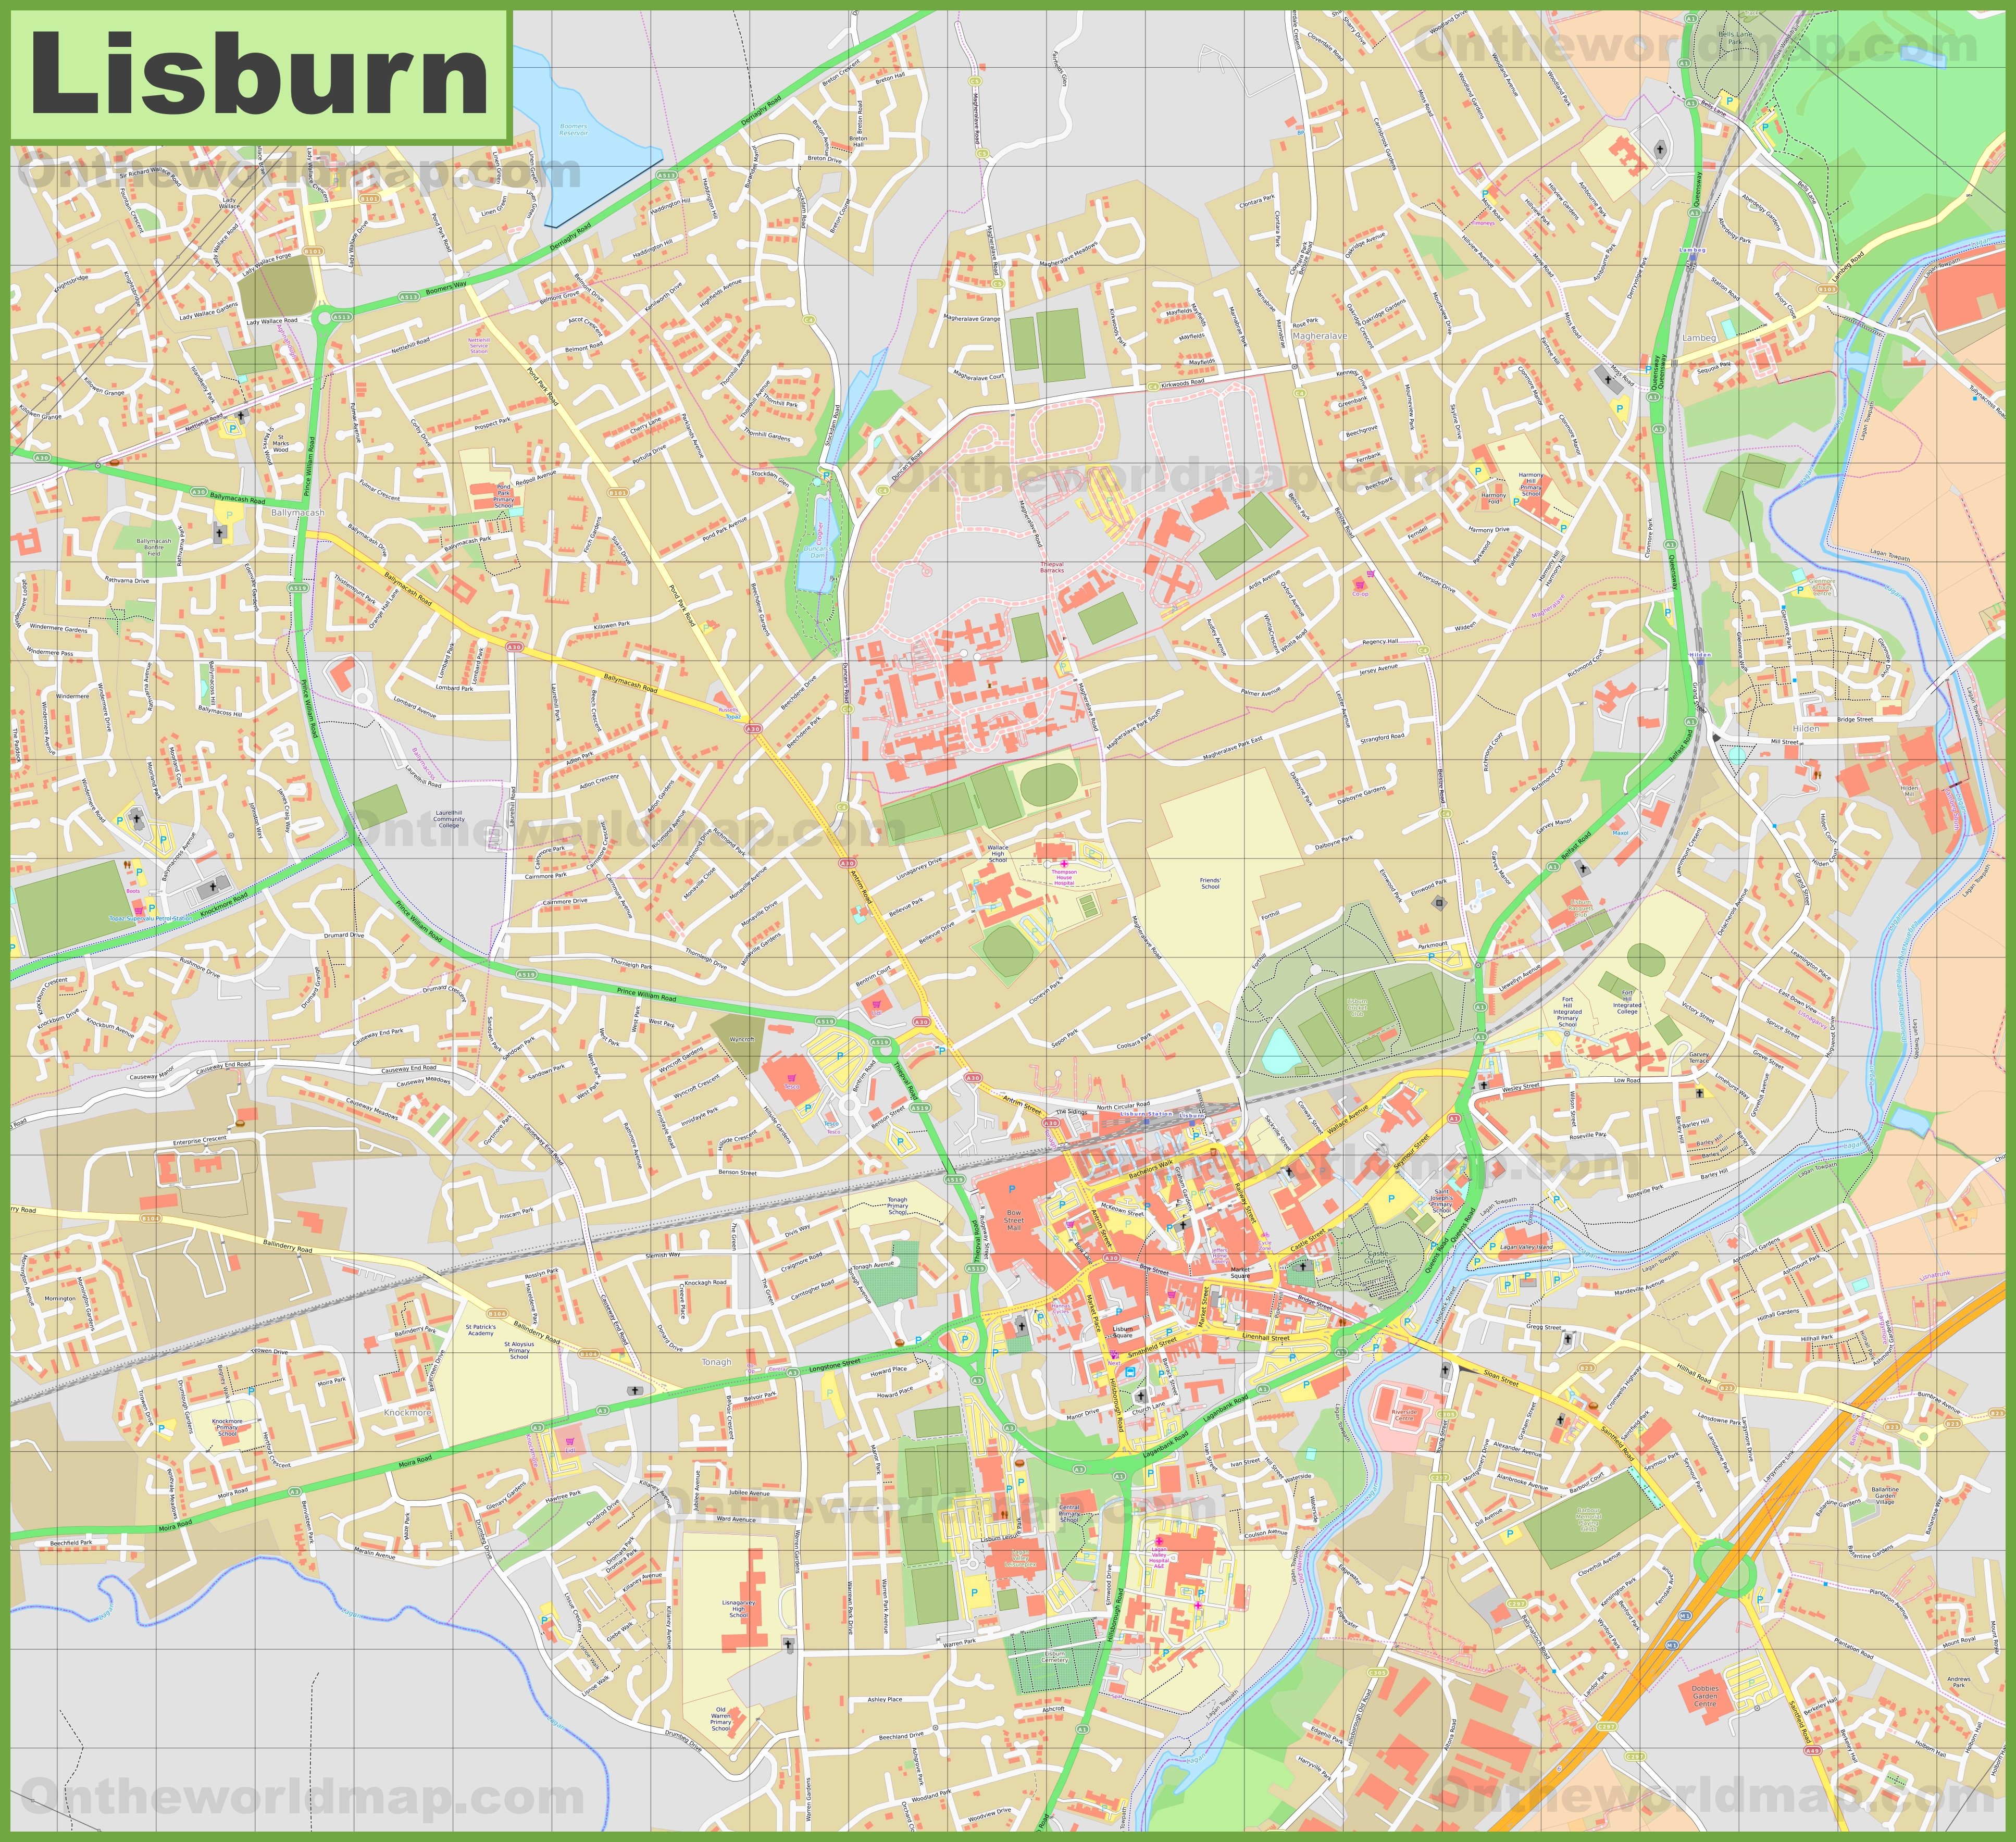 Detailed map of Lisburn